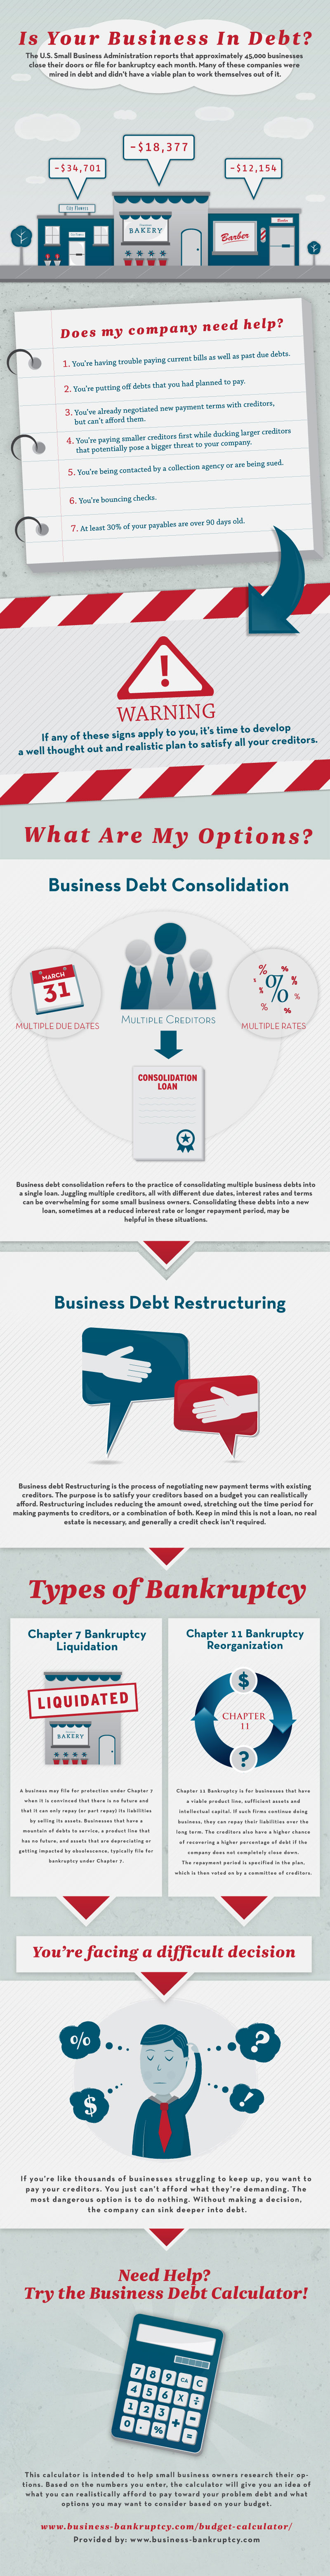 Is Your Business In Debt?